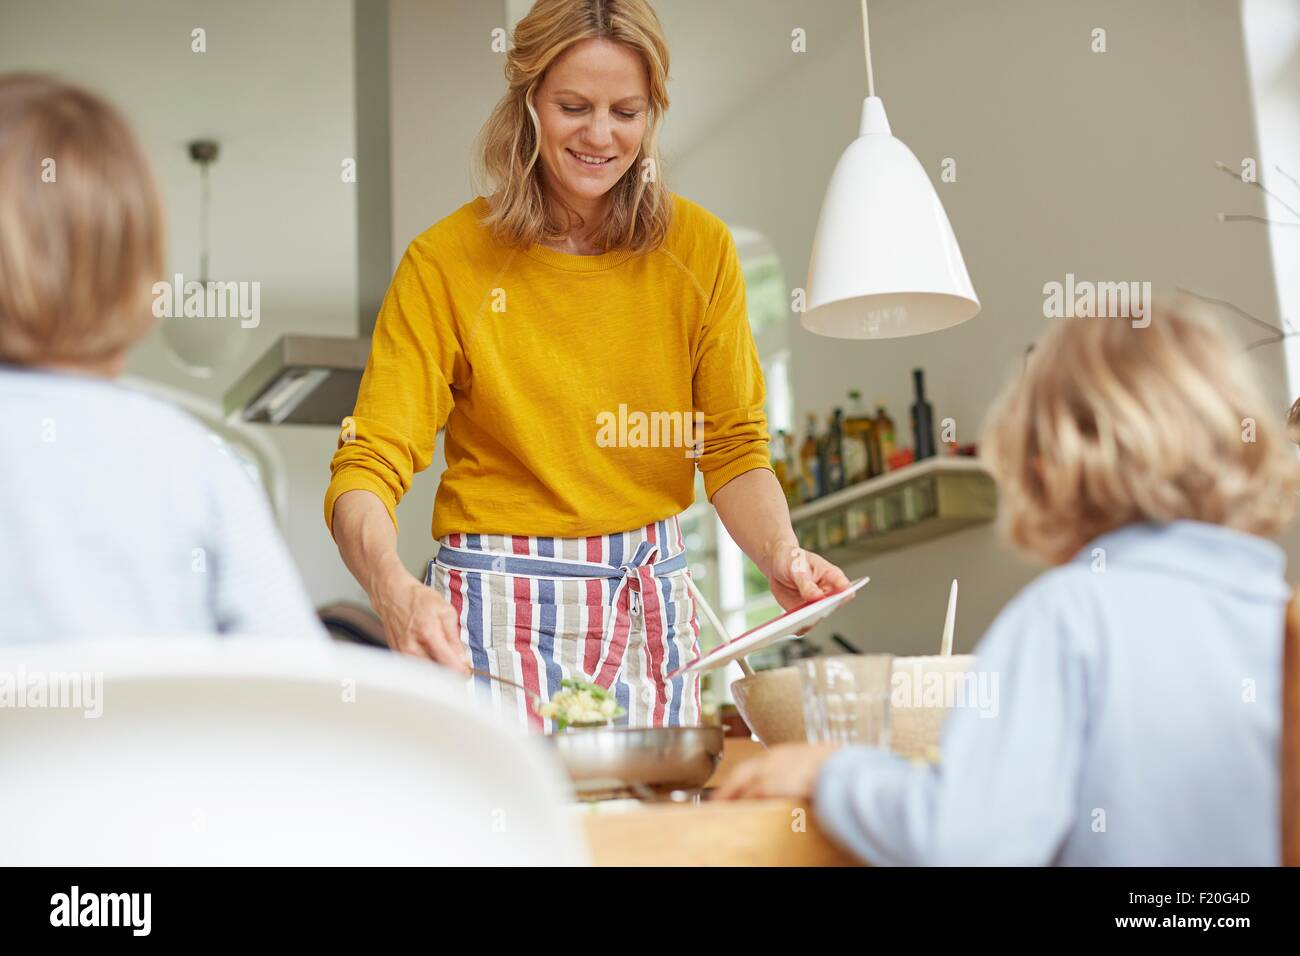 Woman serving meal at dining table - Stock Image